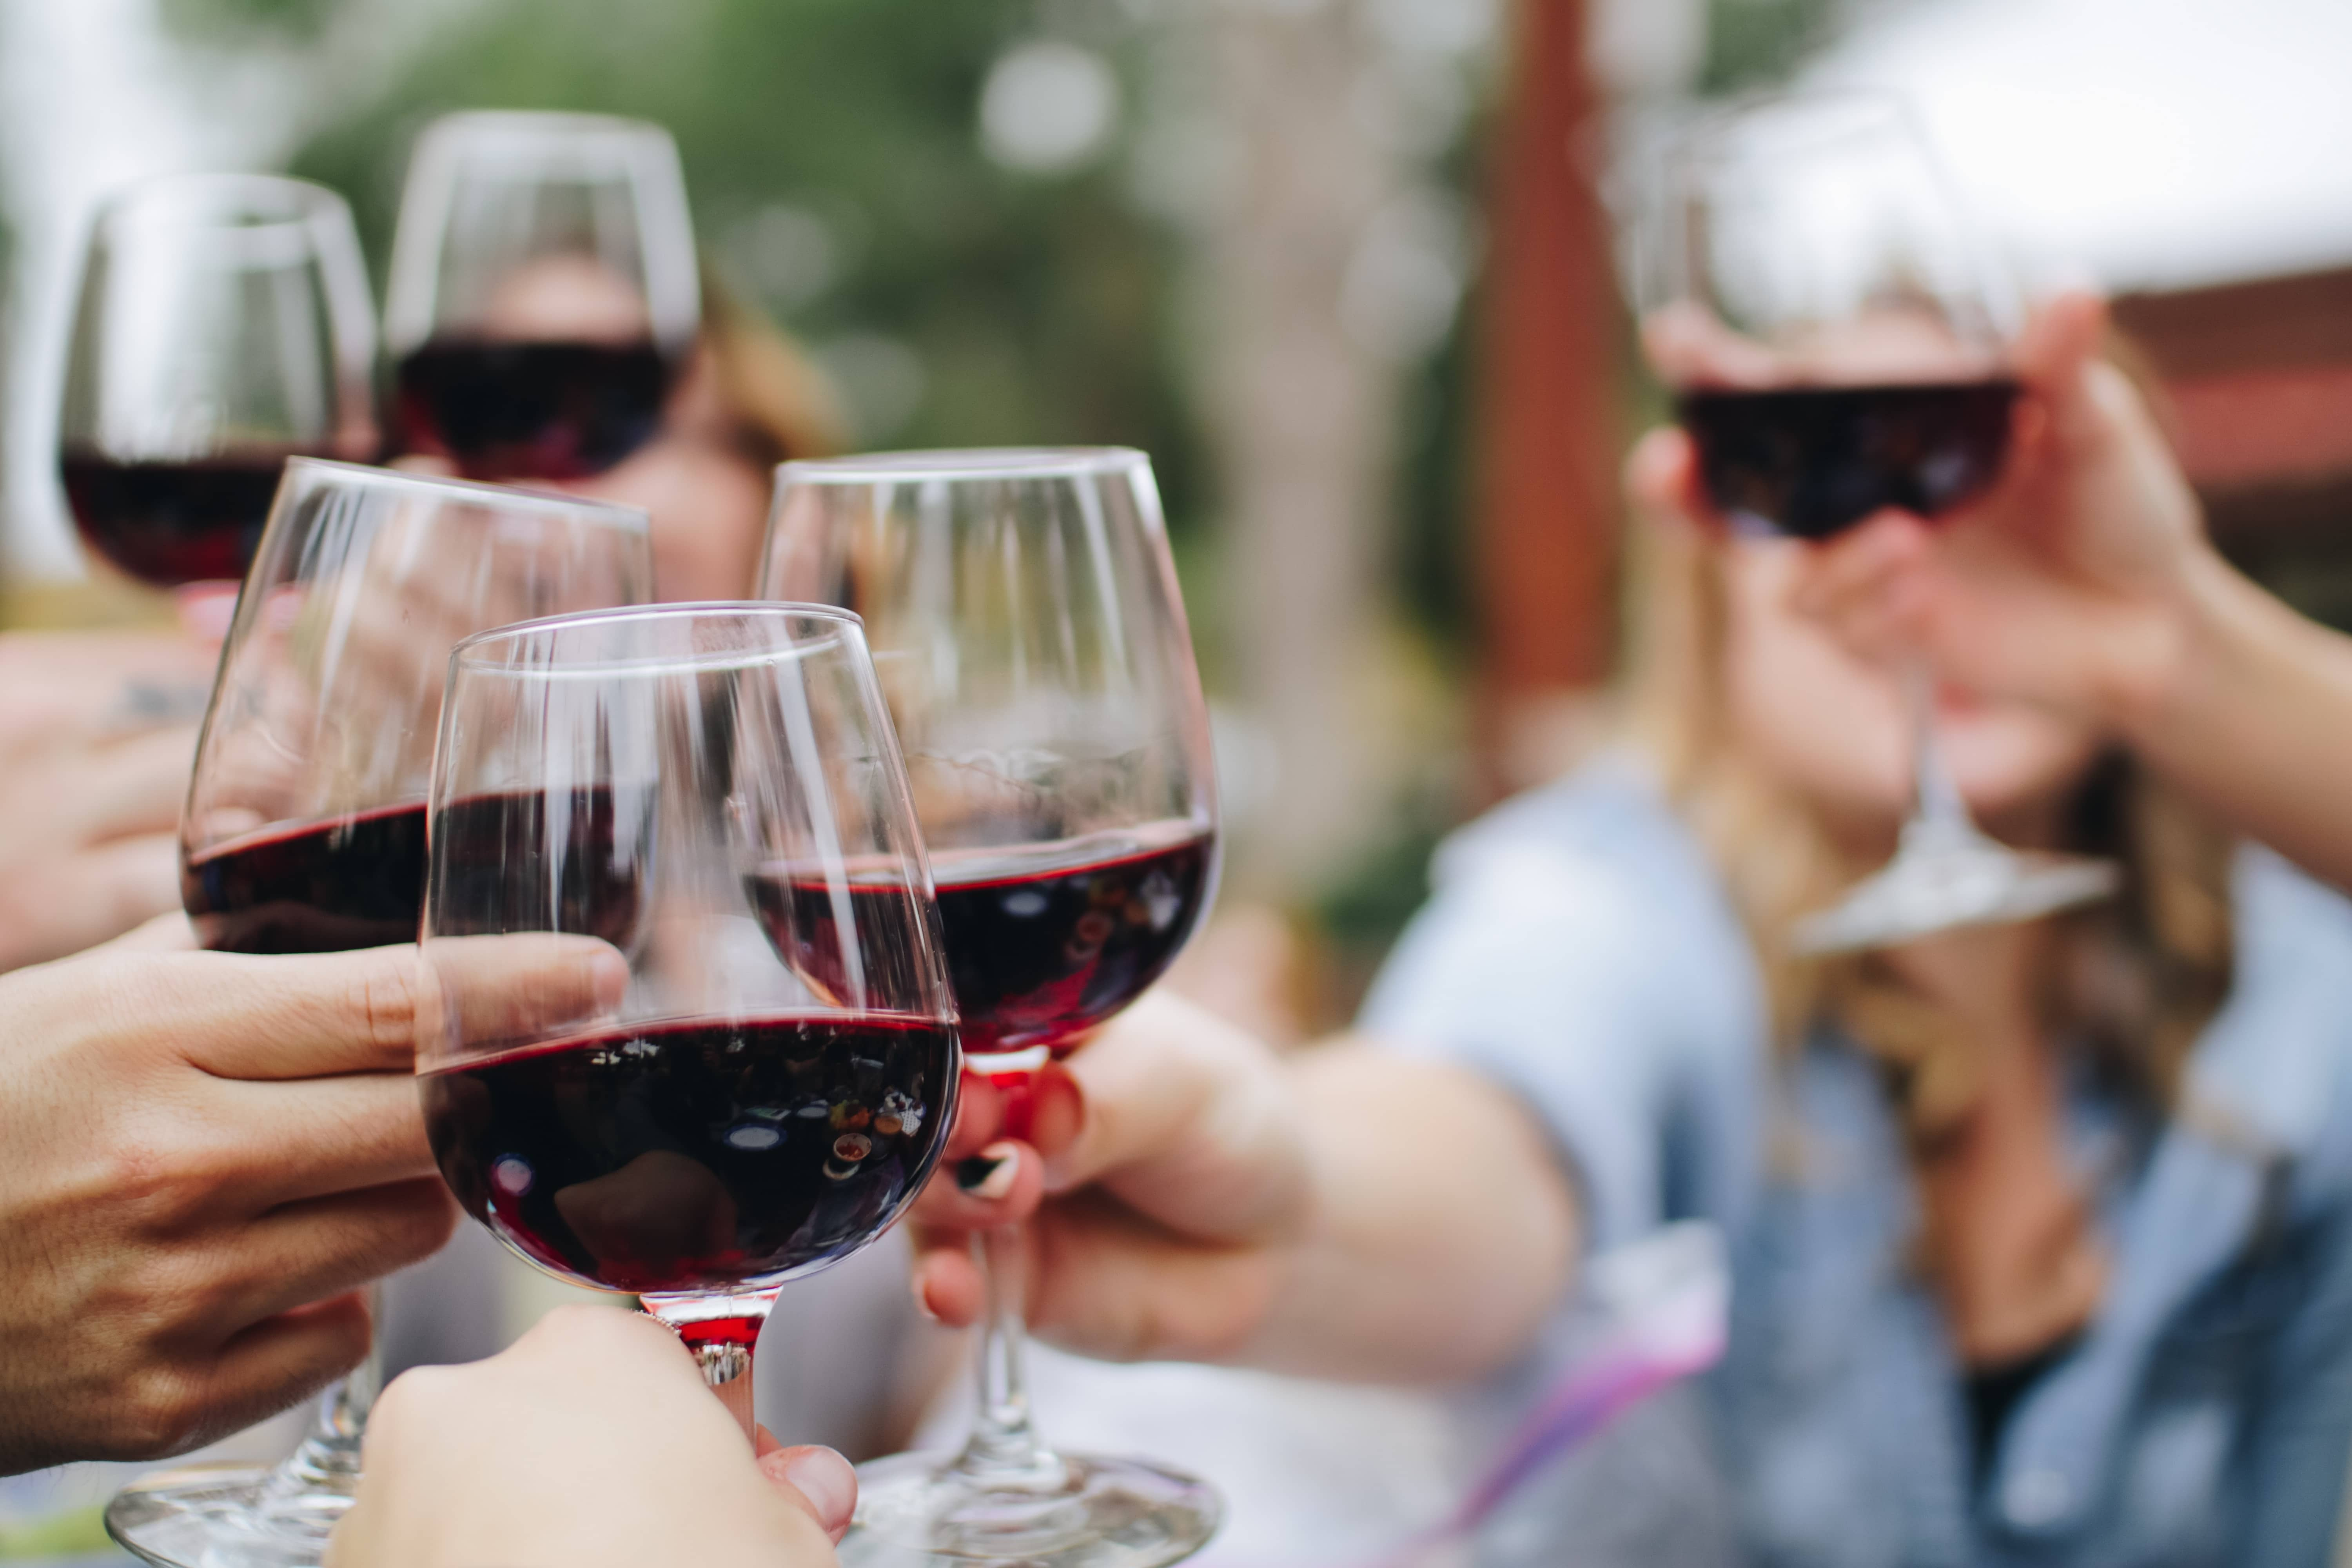 What are the biggest wine trends for 2020?